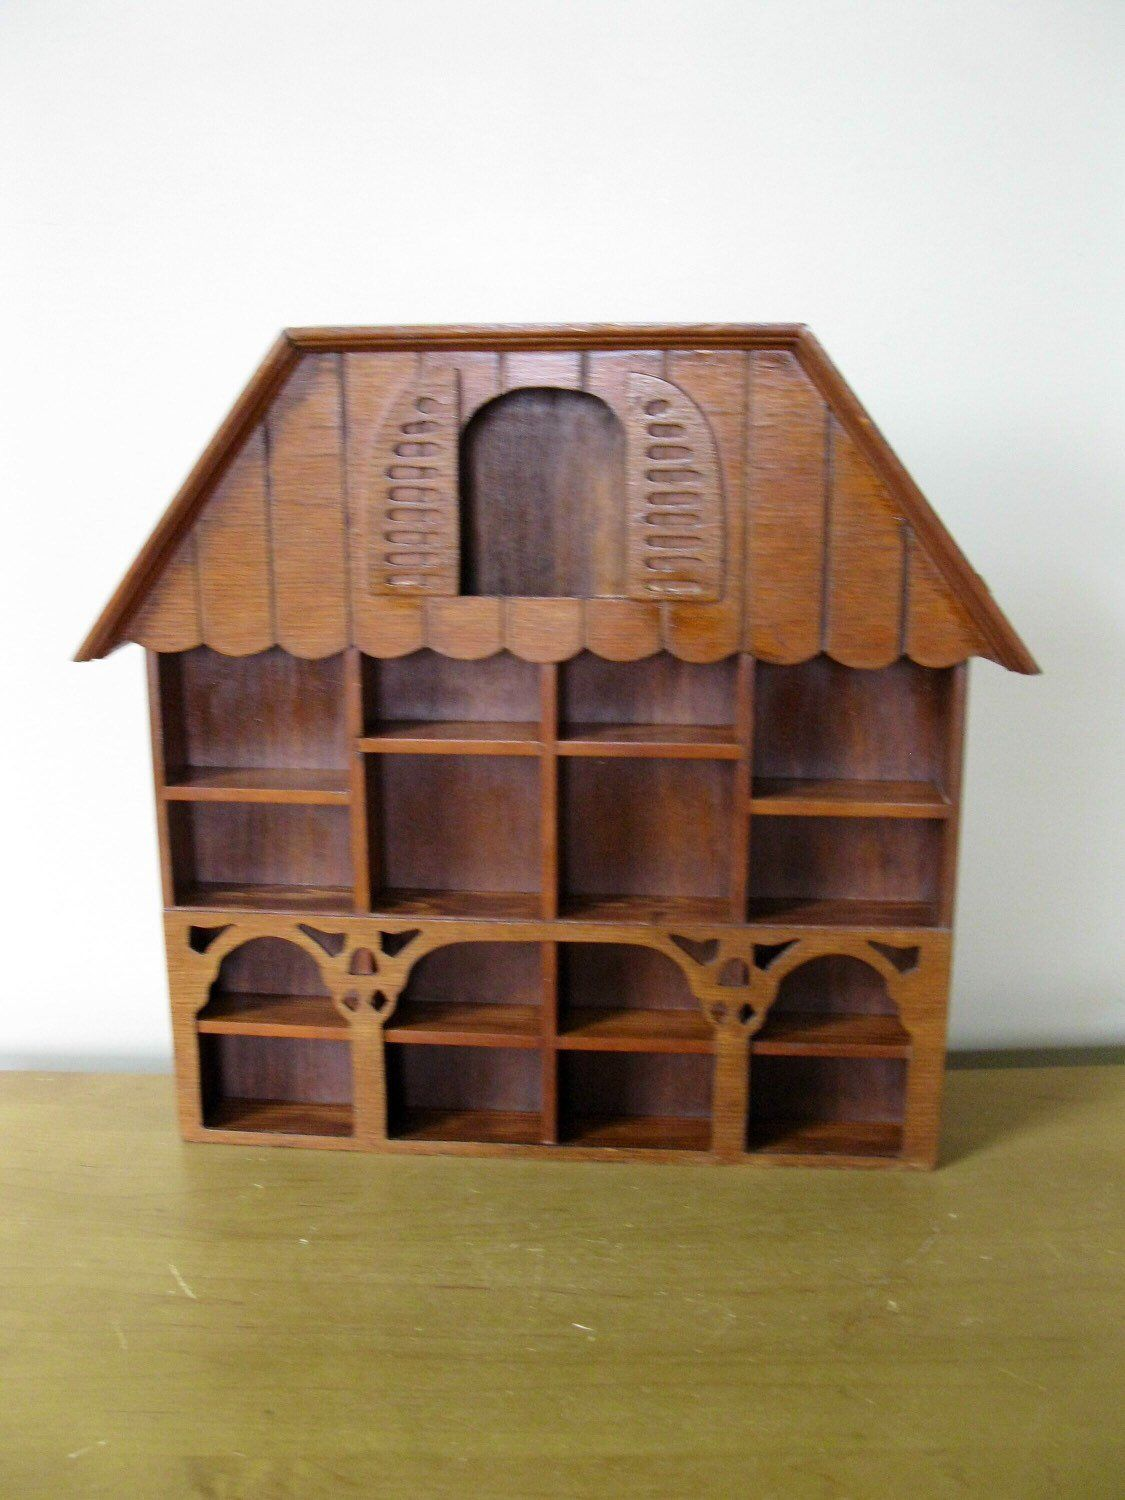 Excited To Share This Item From My Etsy Shop Wood Shadow Box 14 H X 15 Dark Stain House Shape Gabled Knick Knac Wood Shadow Box Shadow Box Dark Stains